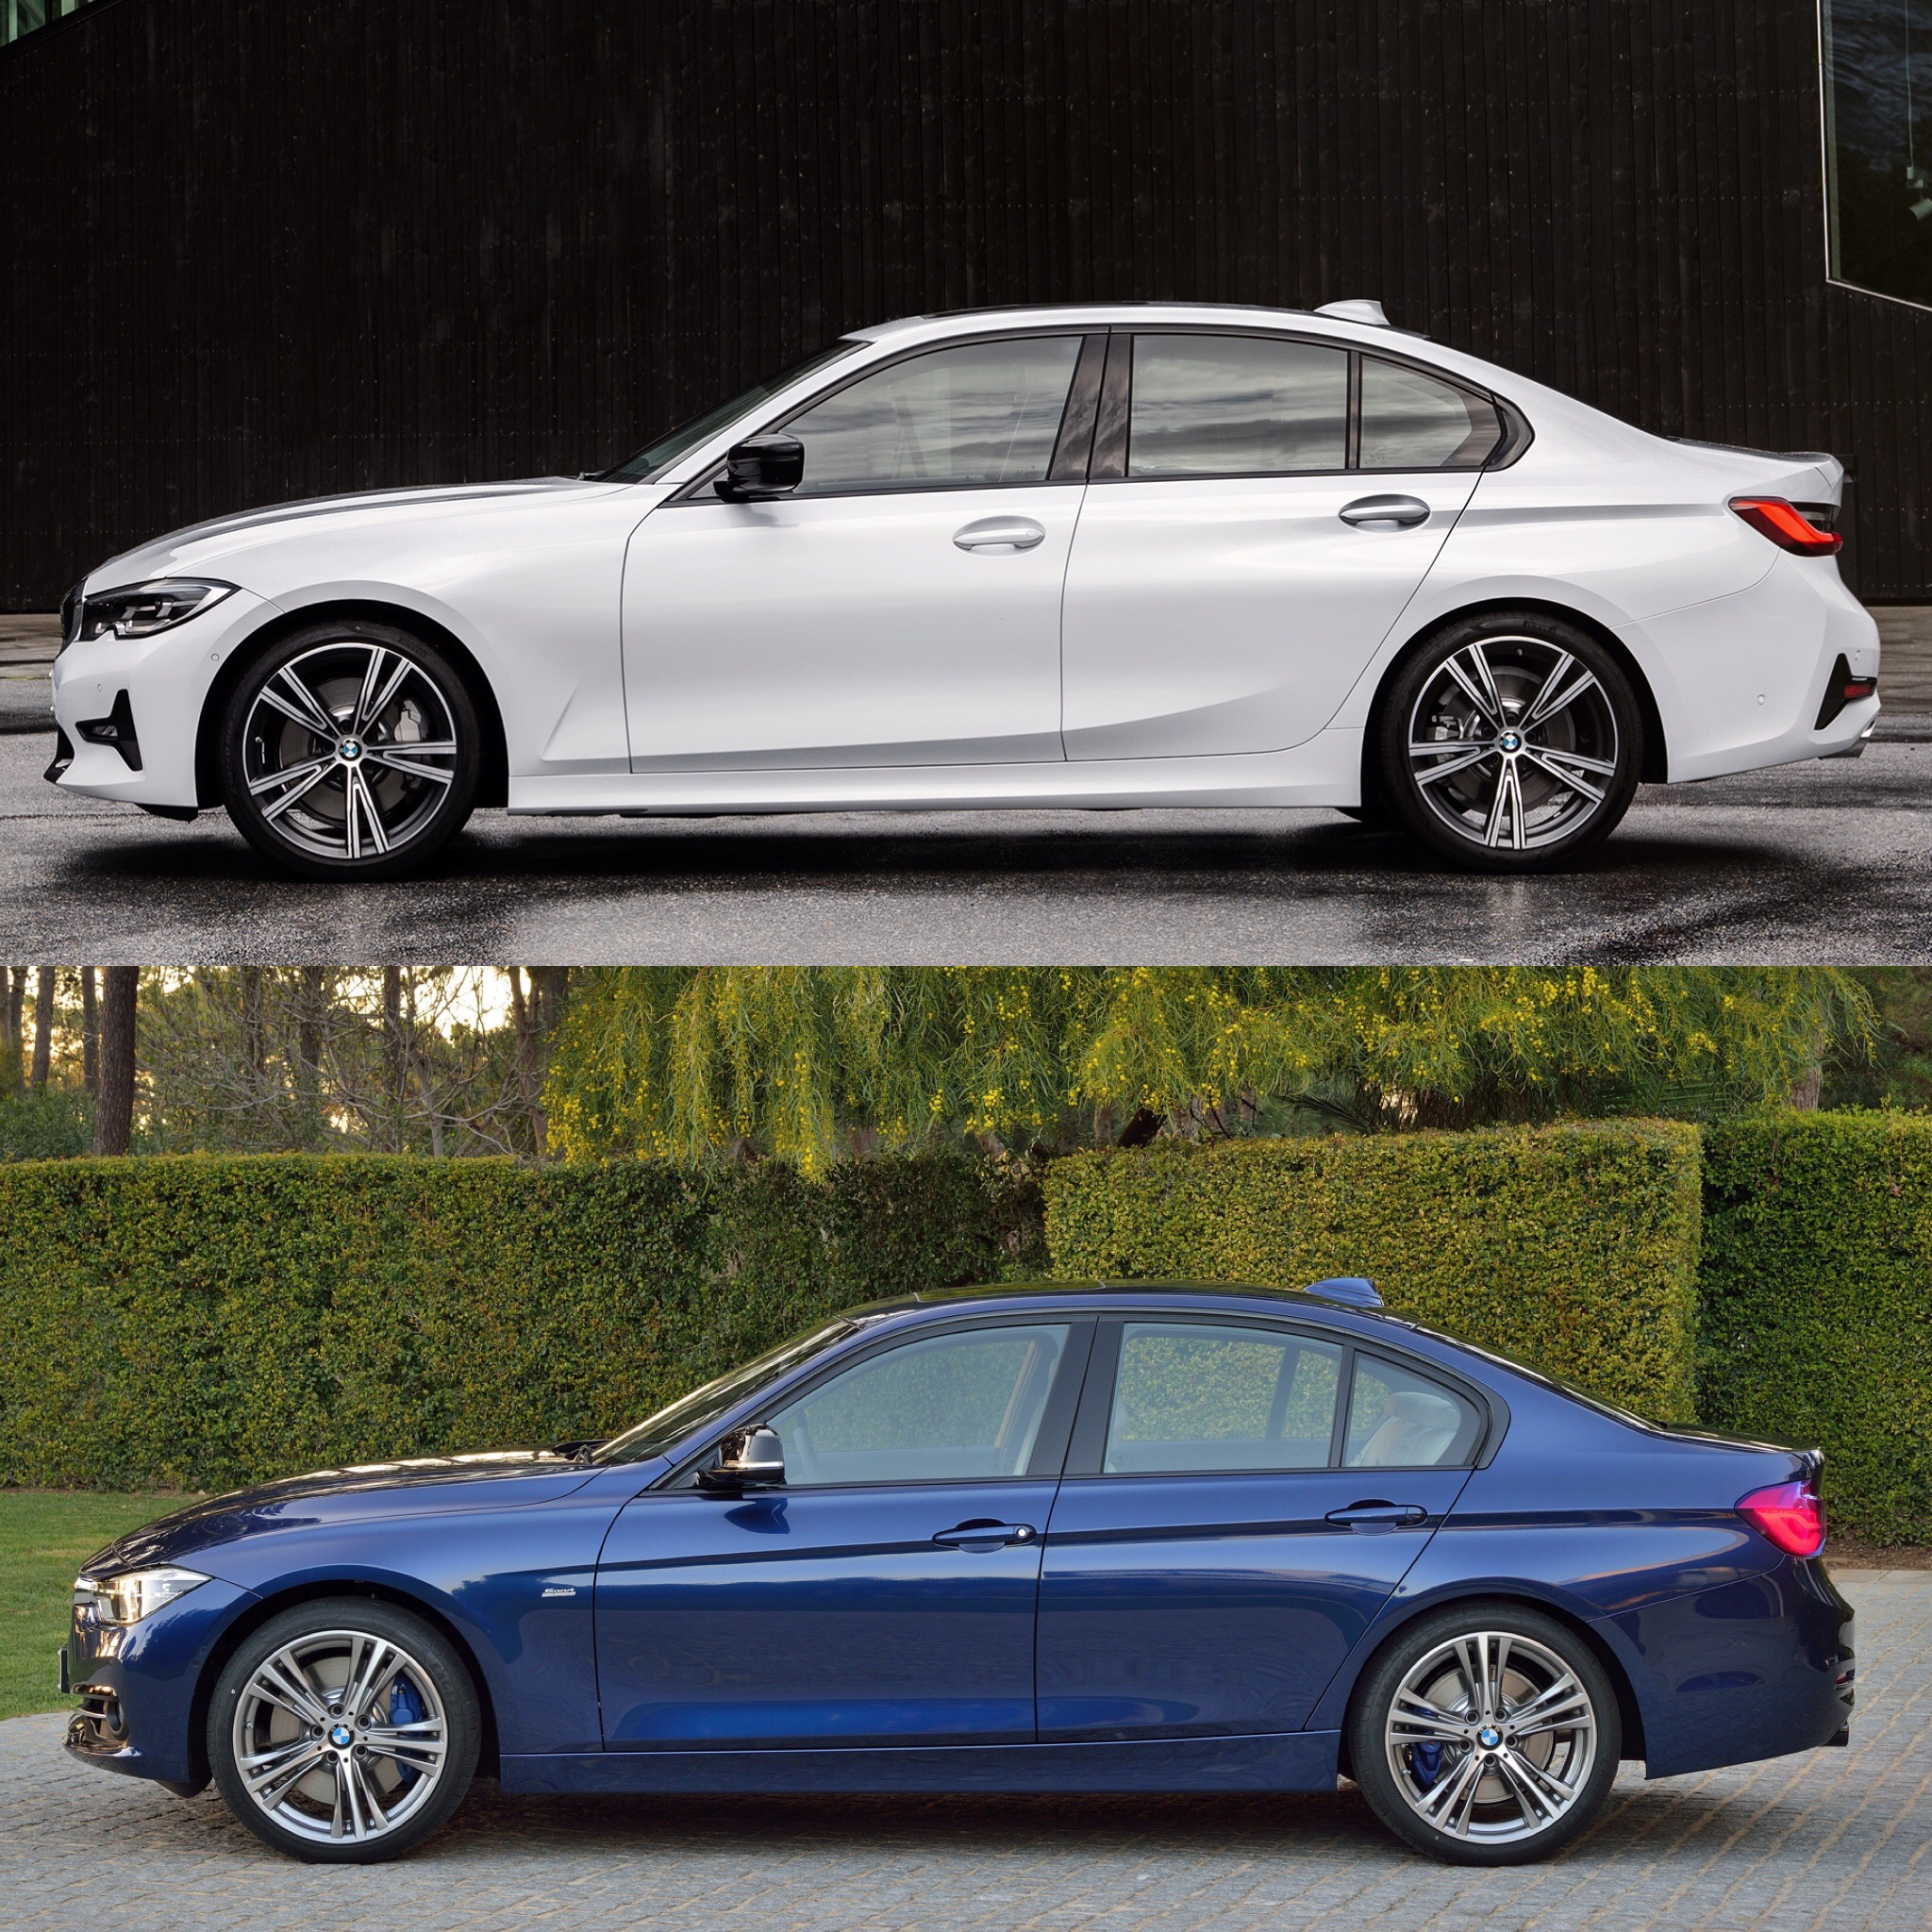 Compare Bmw Models: Photo Comparison: G20 BMW 3 Series Vs F30 BMW 3 Series